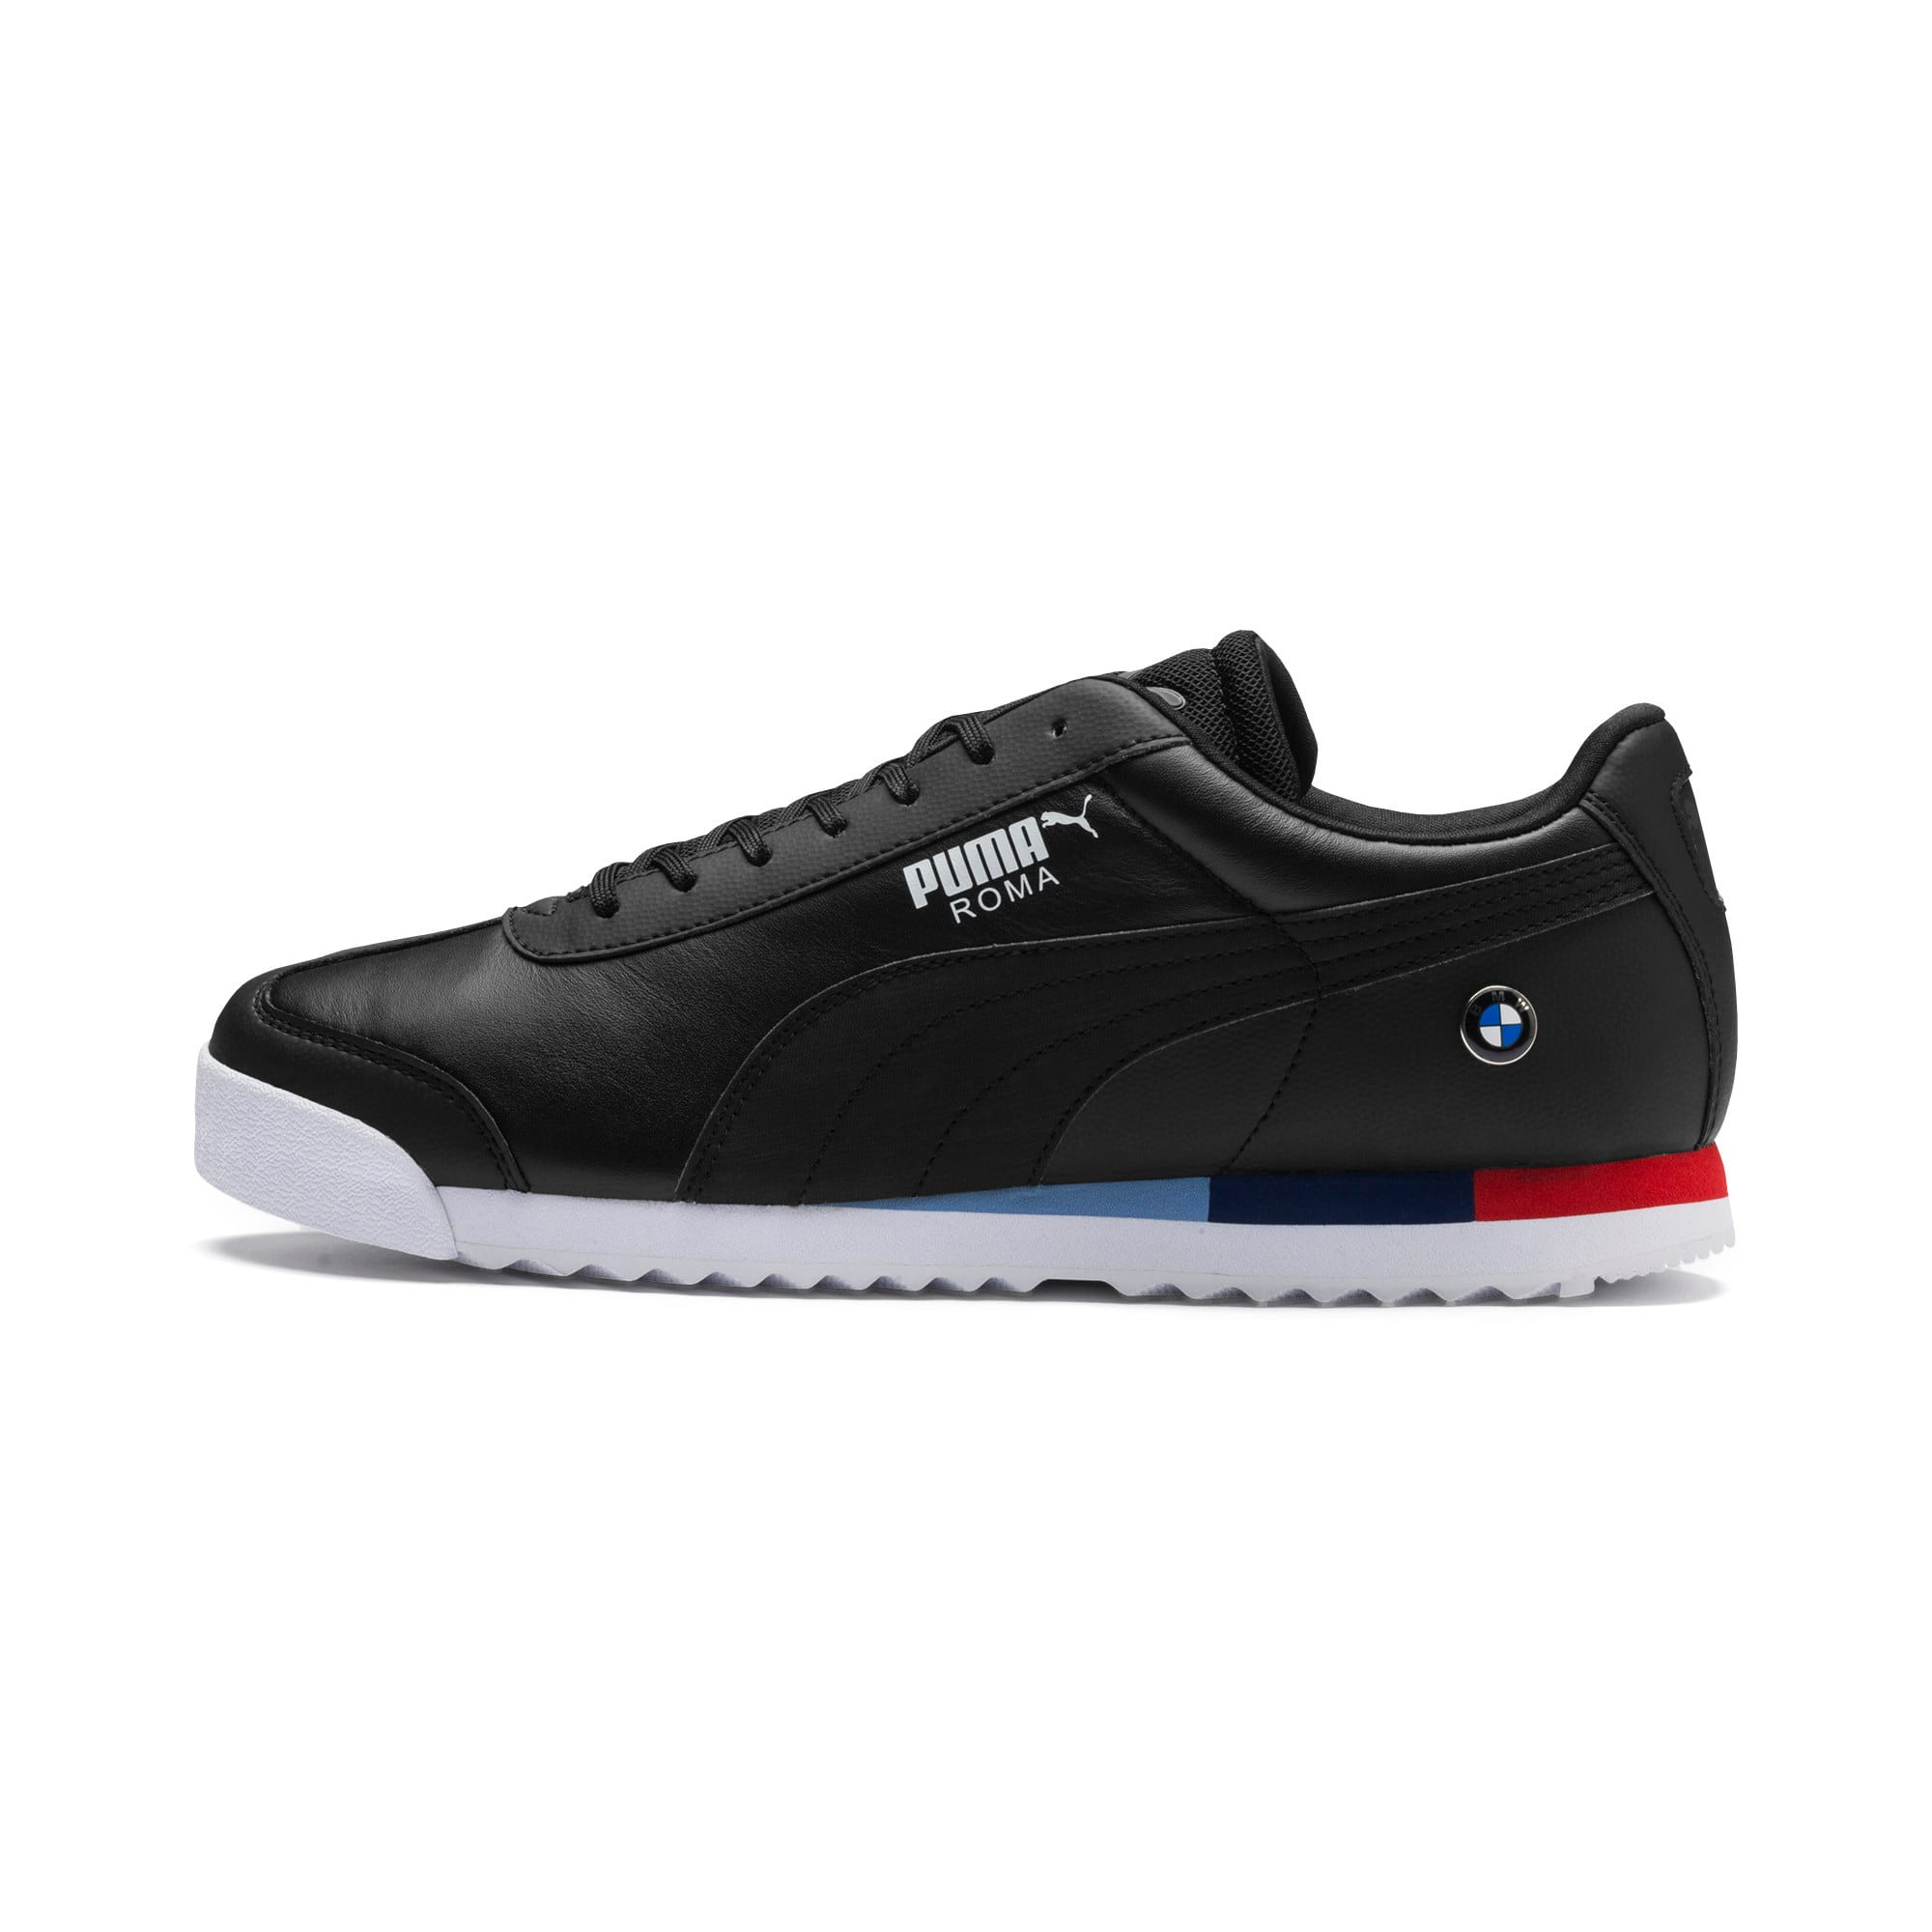 Thumbnail 1 of BMW MMS Roma Men's Trainers, Puma Black-Puma Black, medium